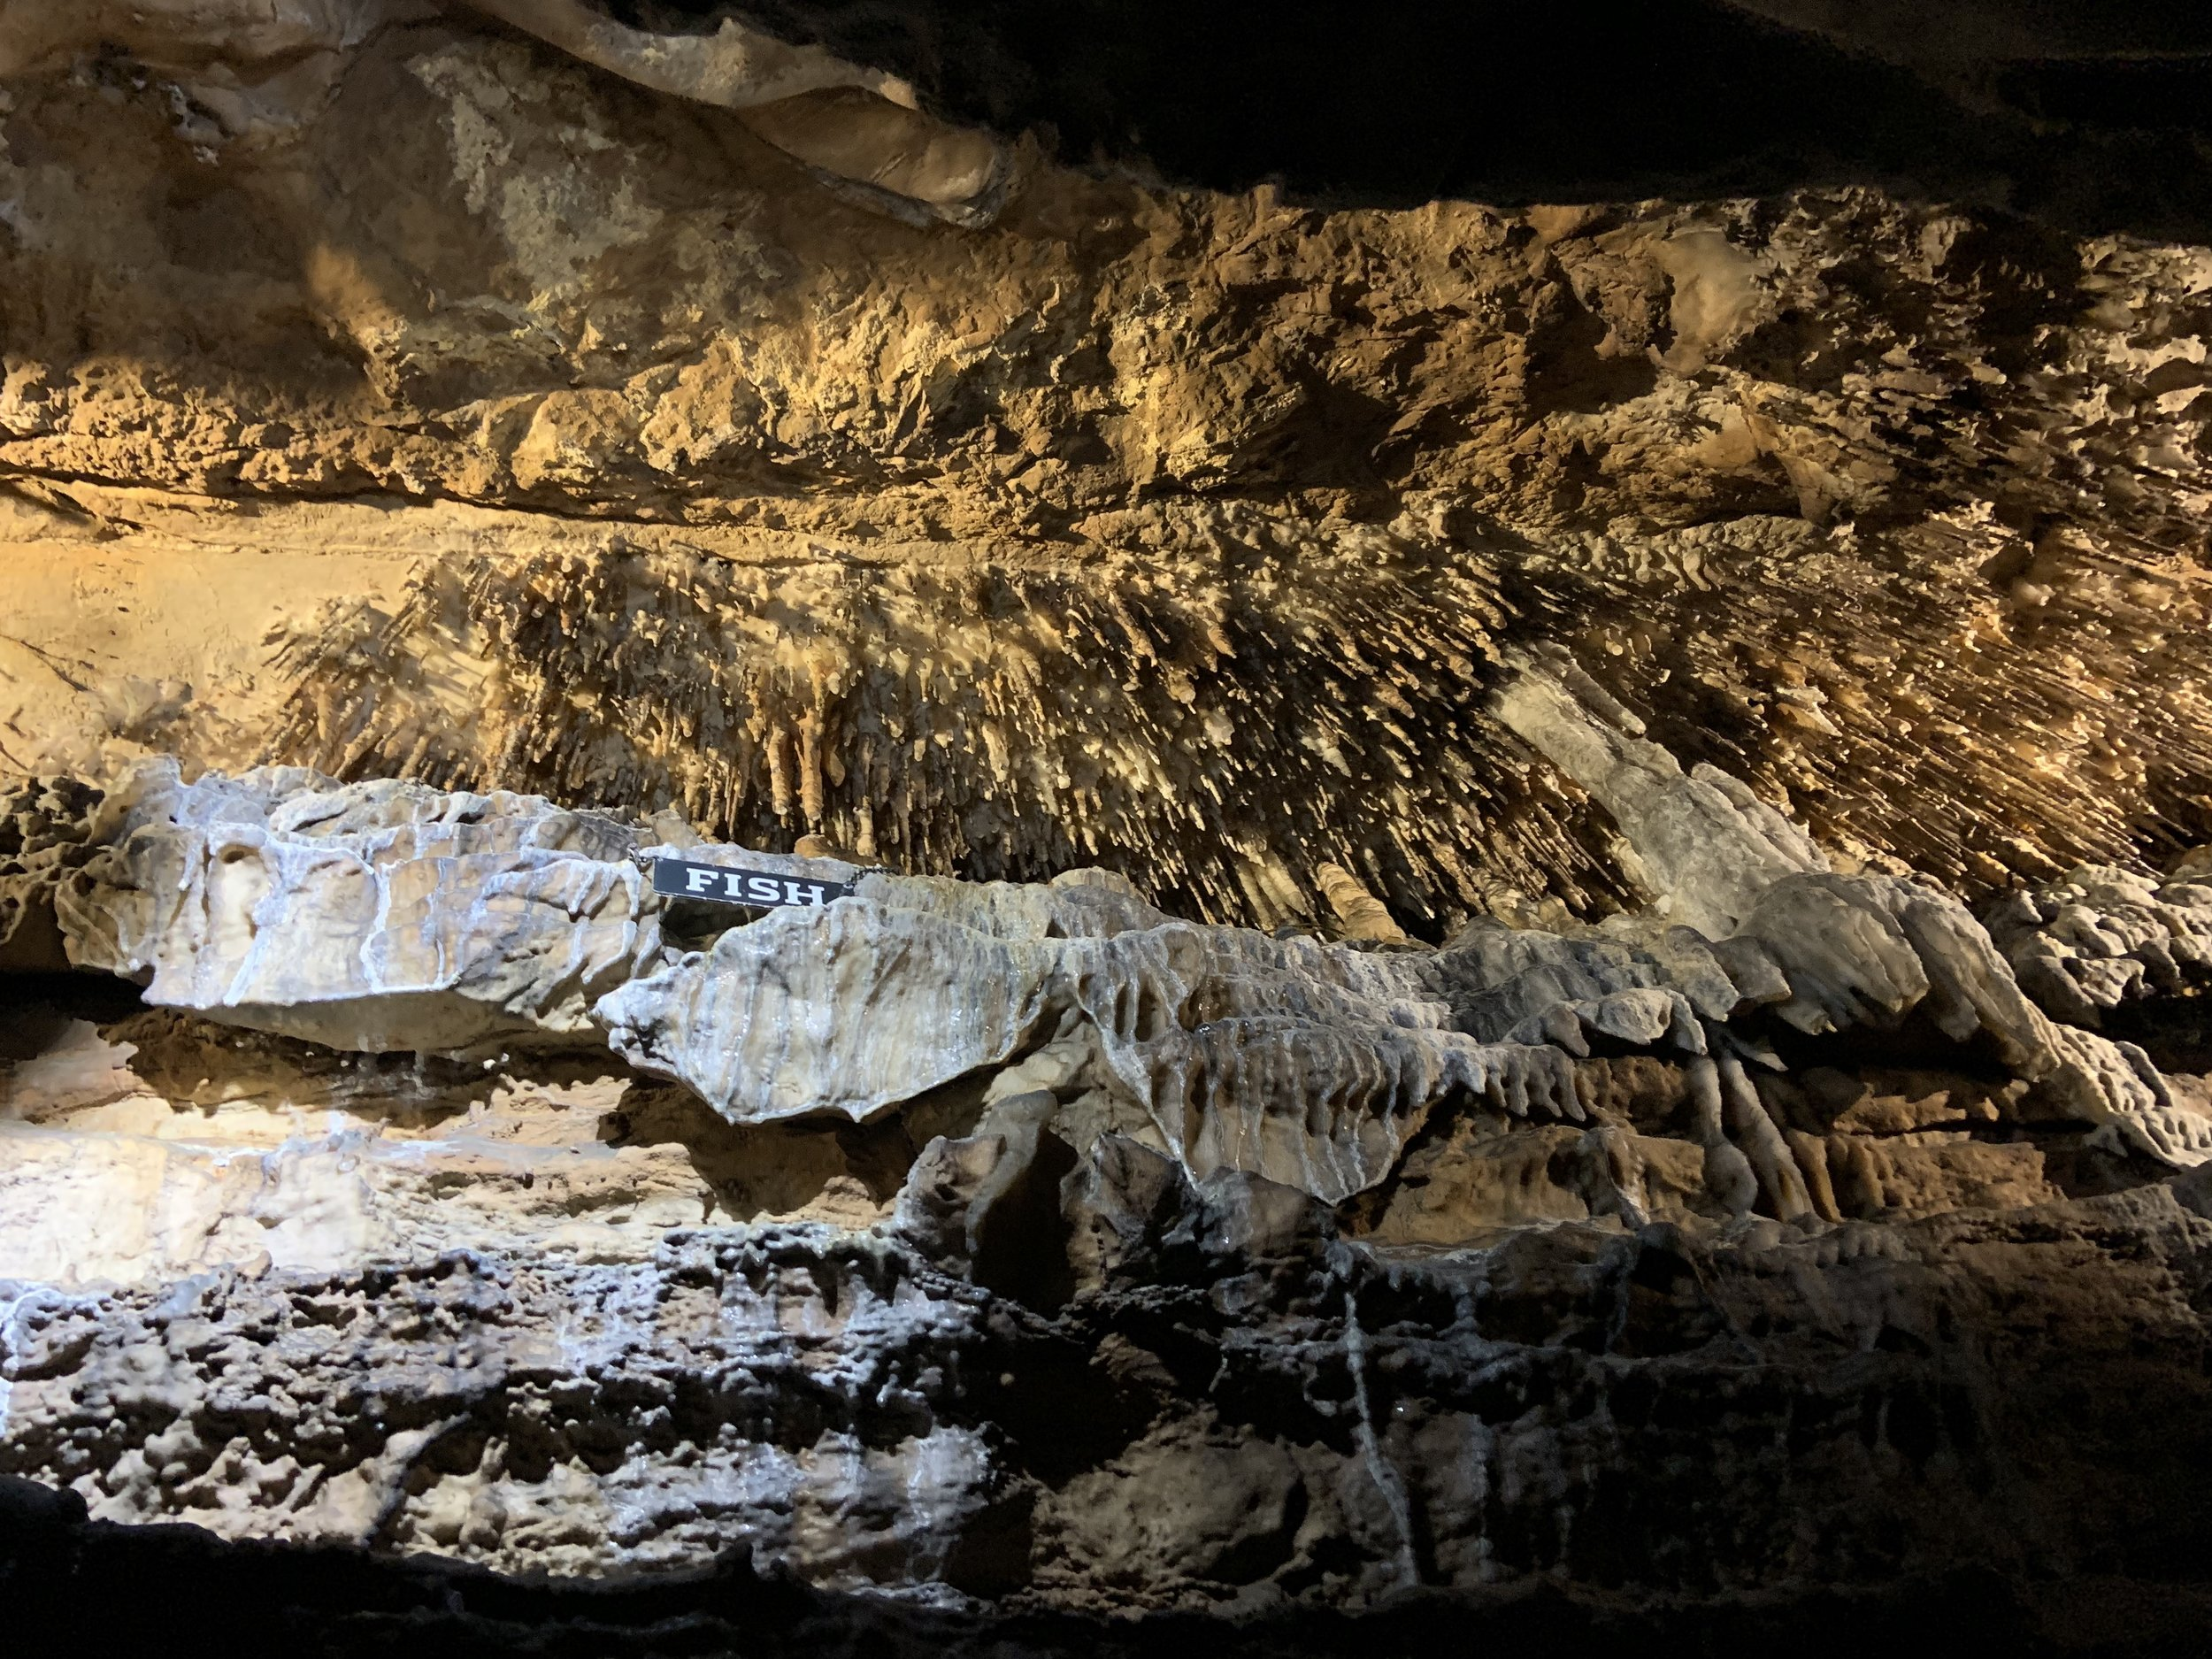 I didn't take much pictures since we were inside the cave, and lighting was not the best. But I just love this picture showing the beauty of the inside of a cave.